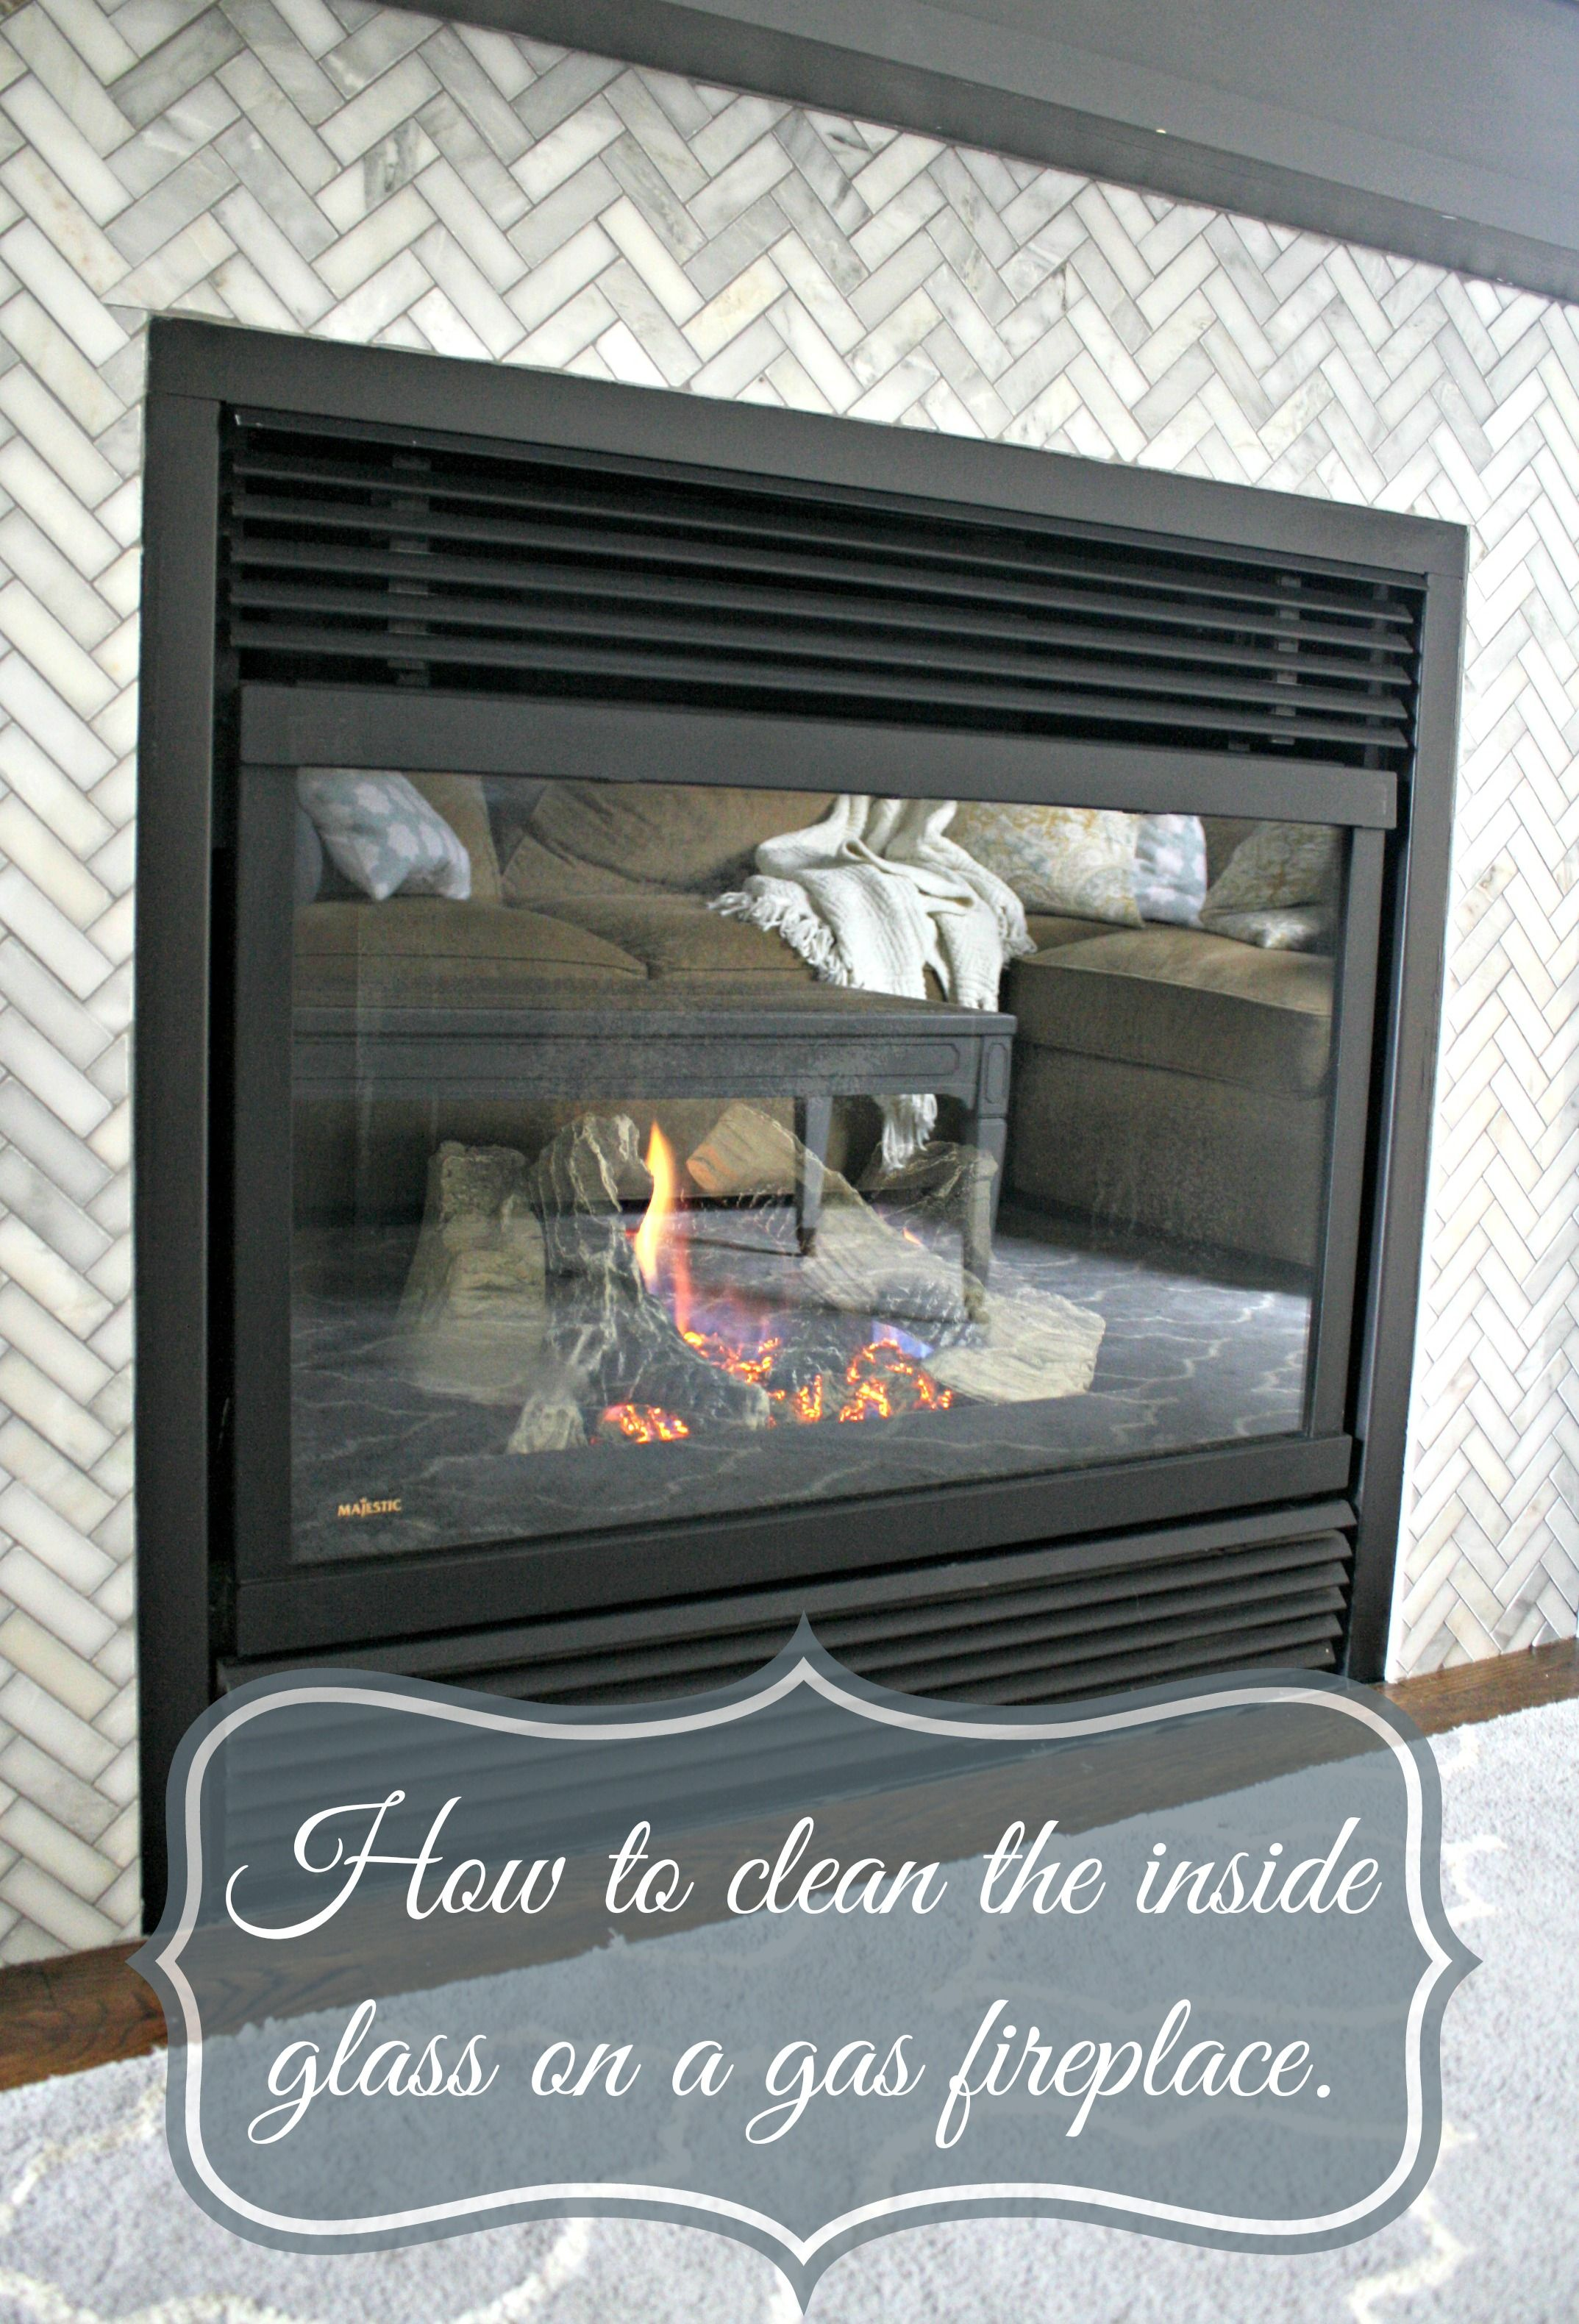 Simple And Quick Instructions On How To Clean The Inside Glass On A